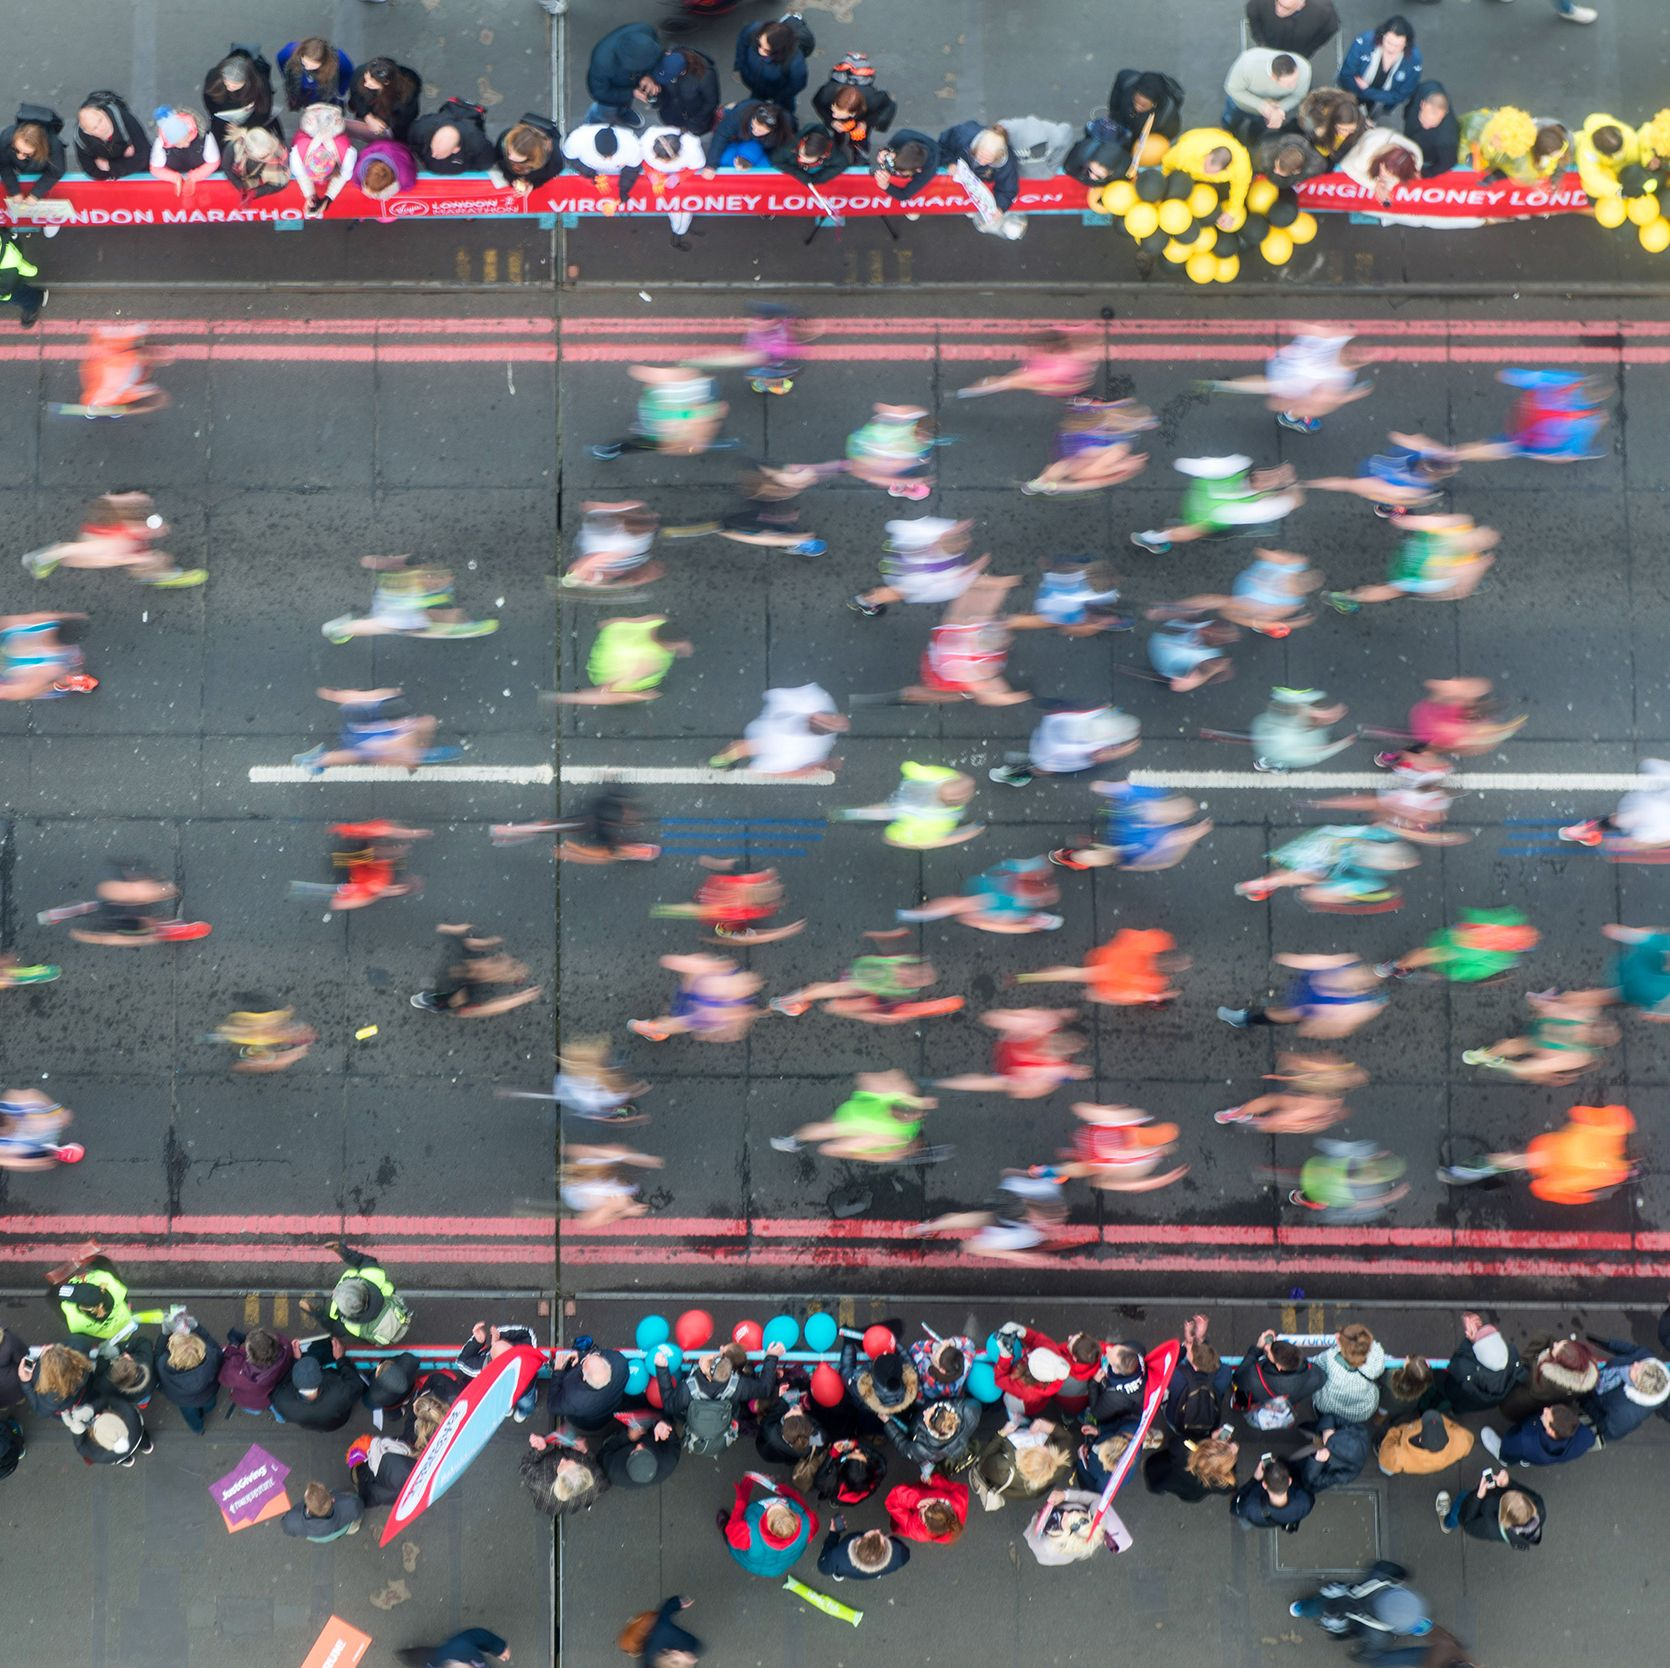 A spectator's guide to the London Marathon 2019